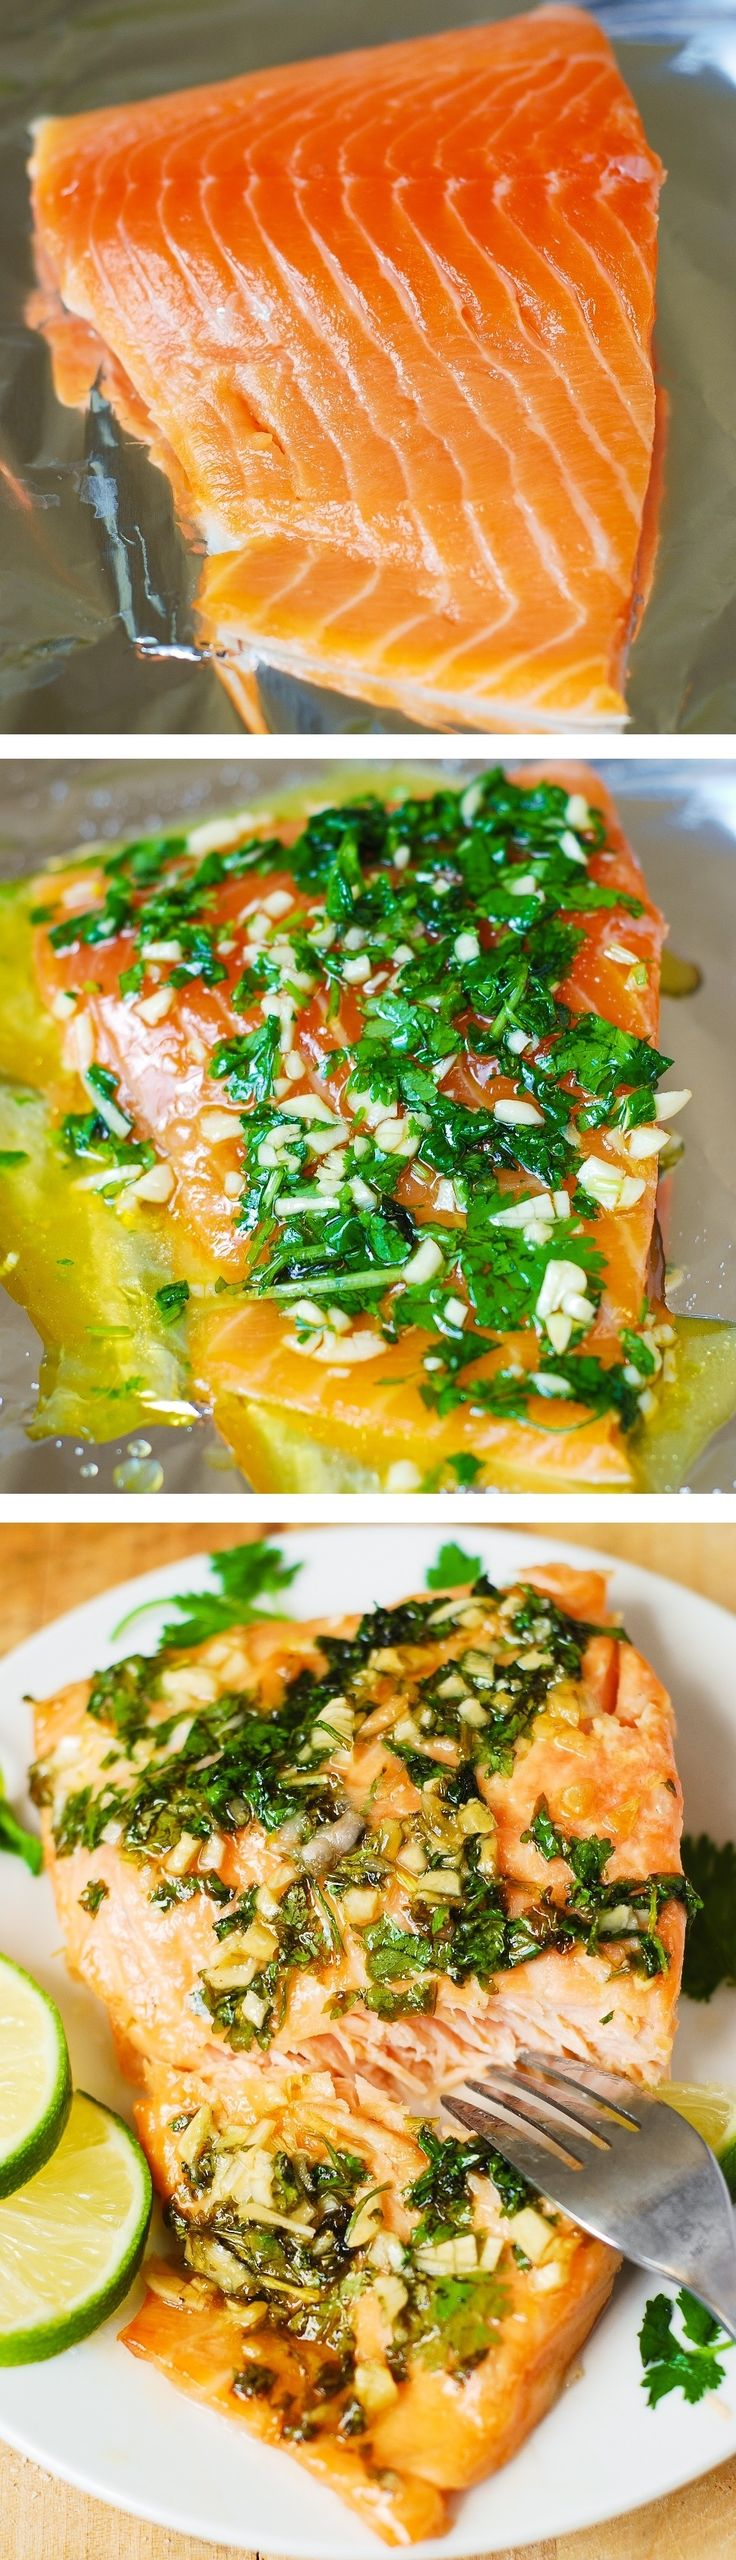 https://paleo-diet-menu.blogspot.com/ Cilantro-Lime Honey Garlic Salmon baked in foil – easy, healthy recipe that takes 30 minutes from start to finish!